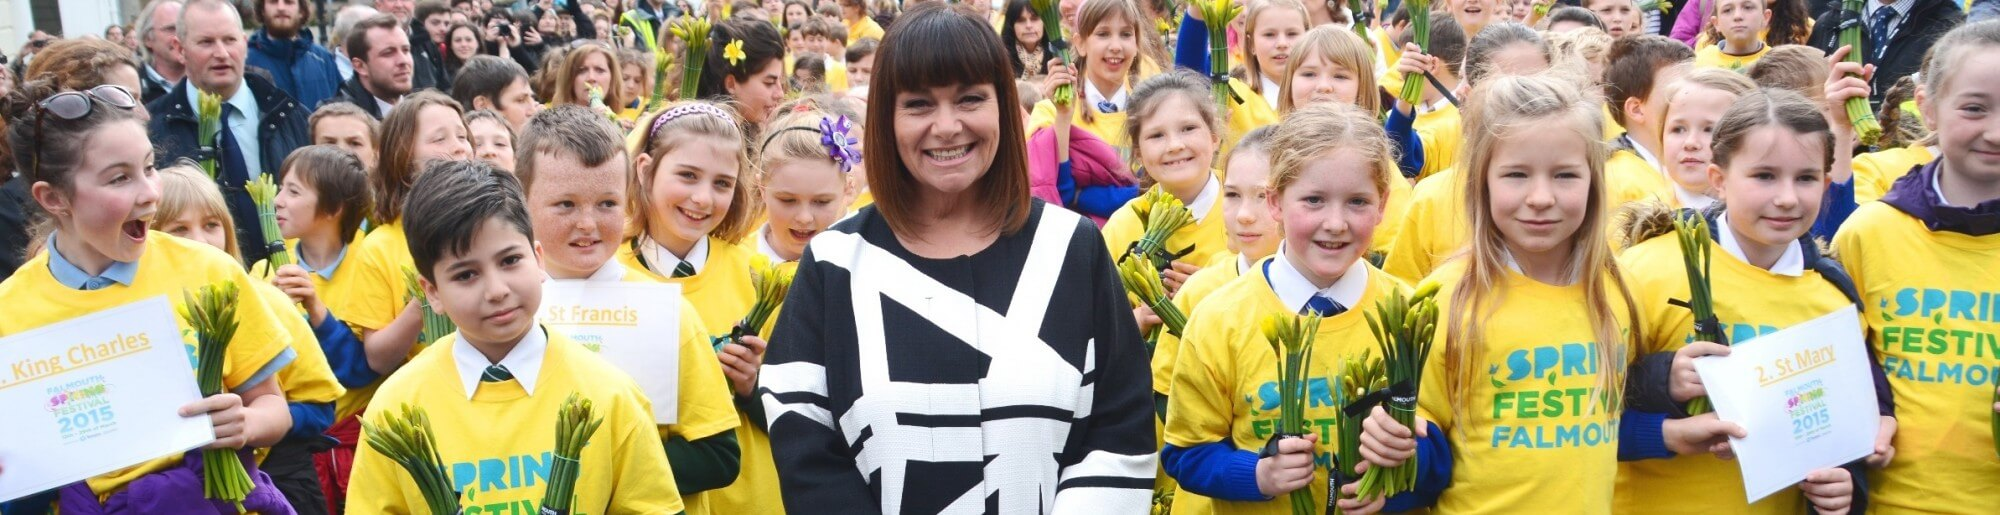 Dawn French was part of the 2015 Yellow procession